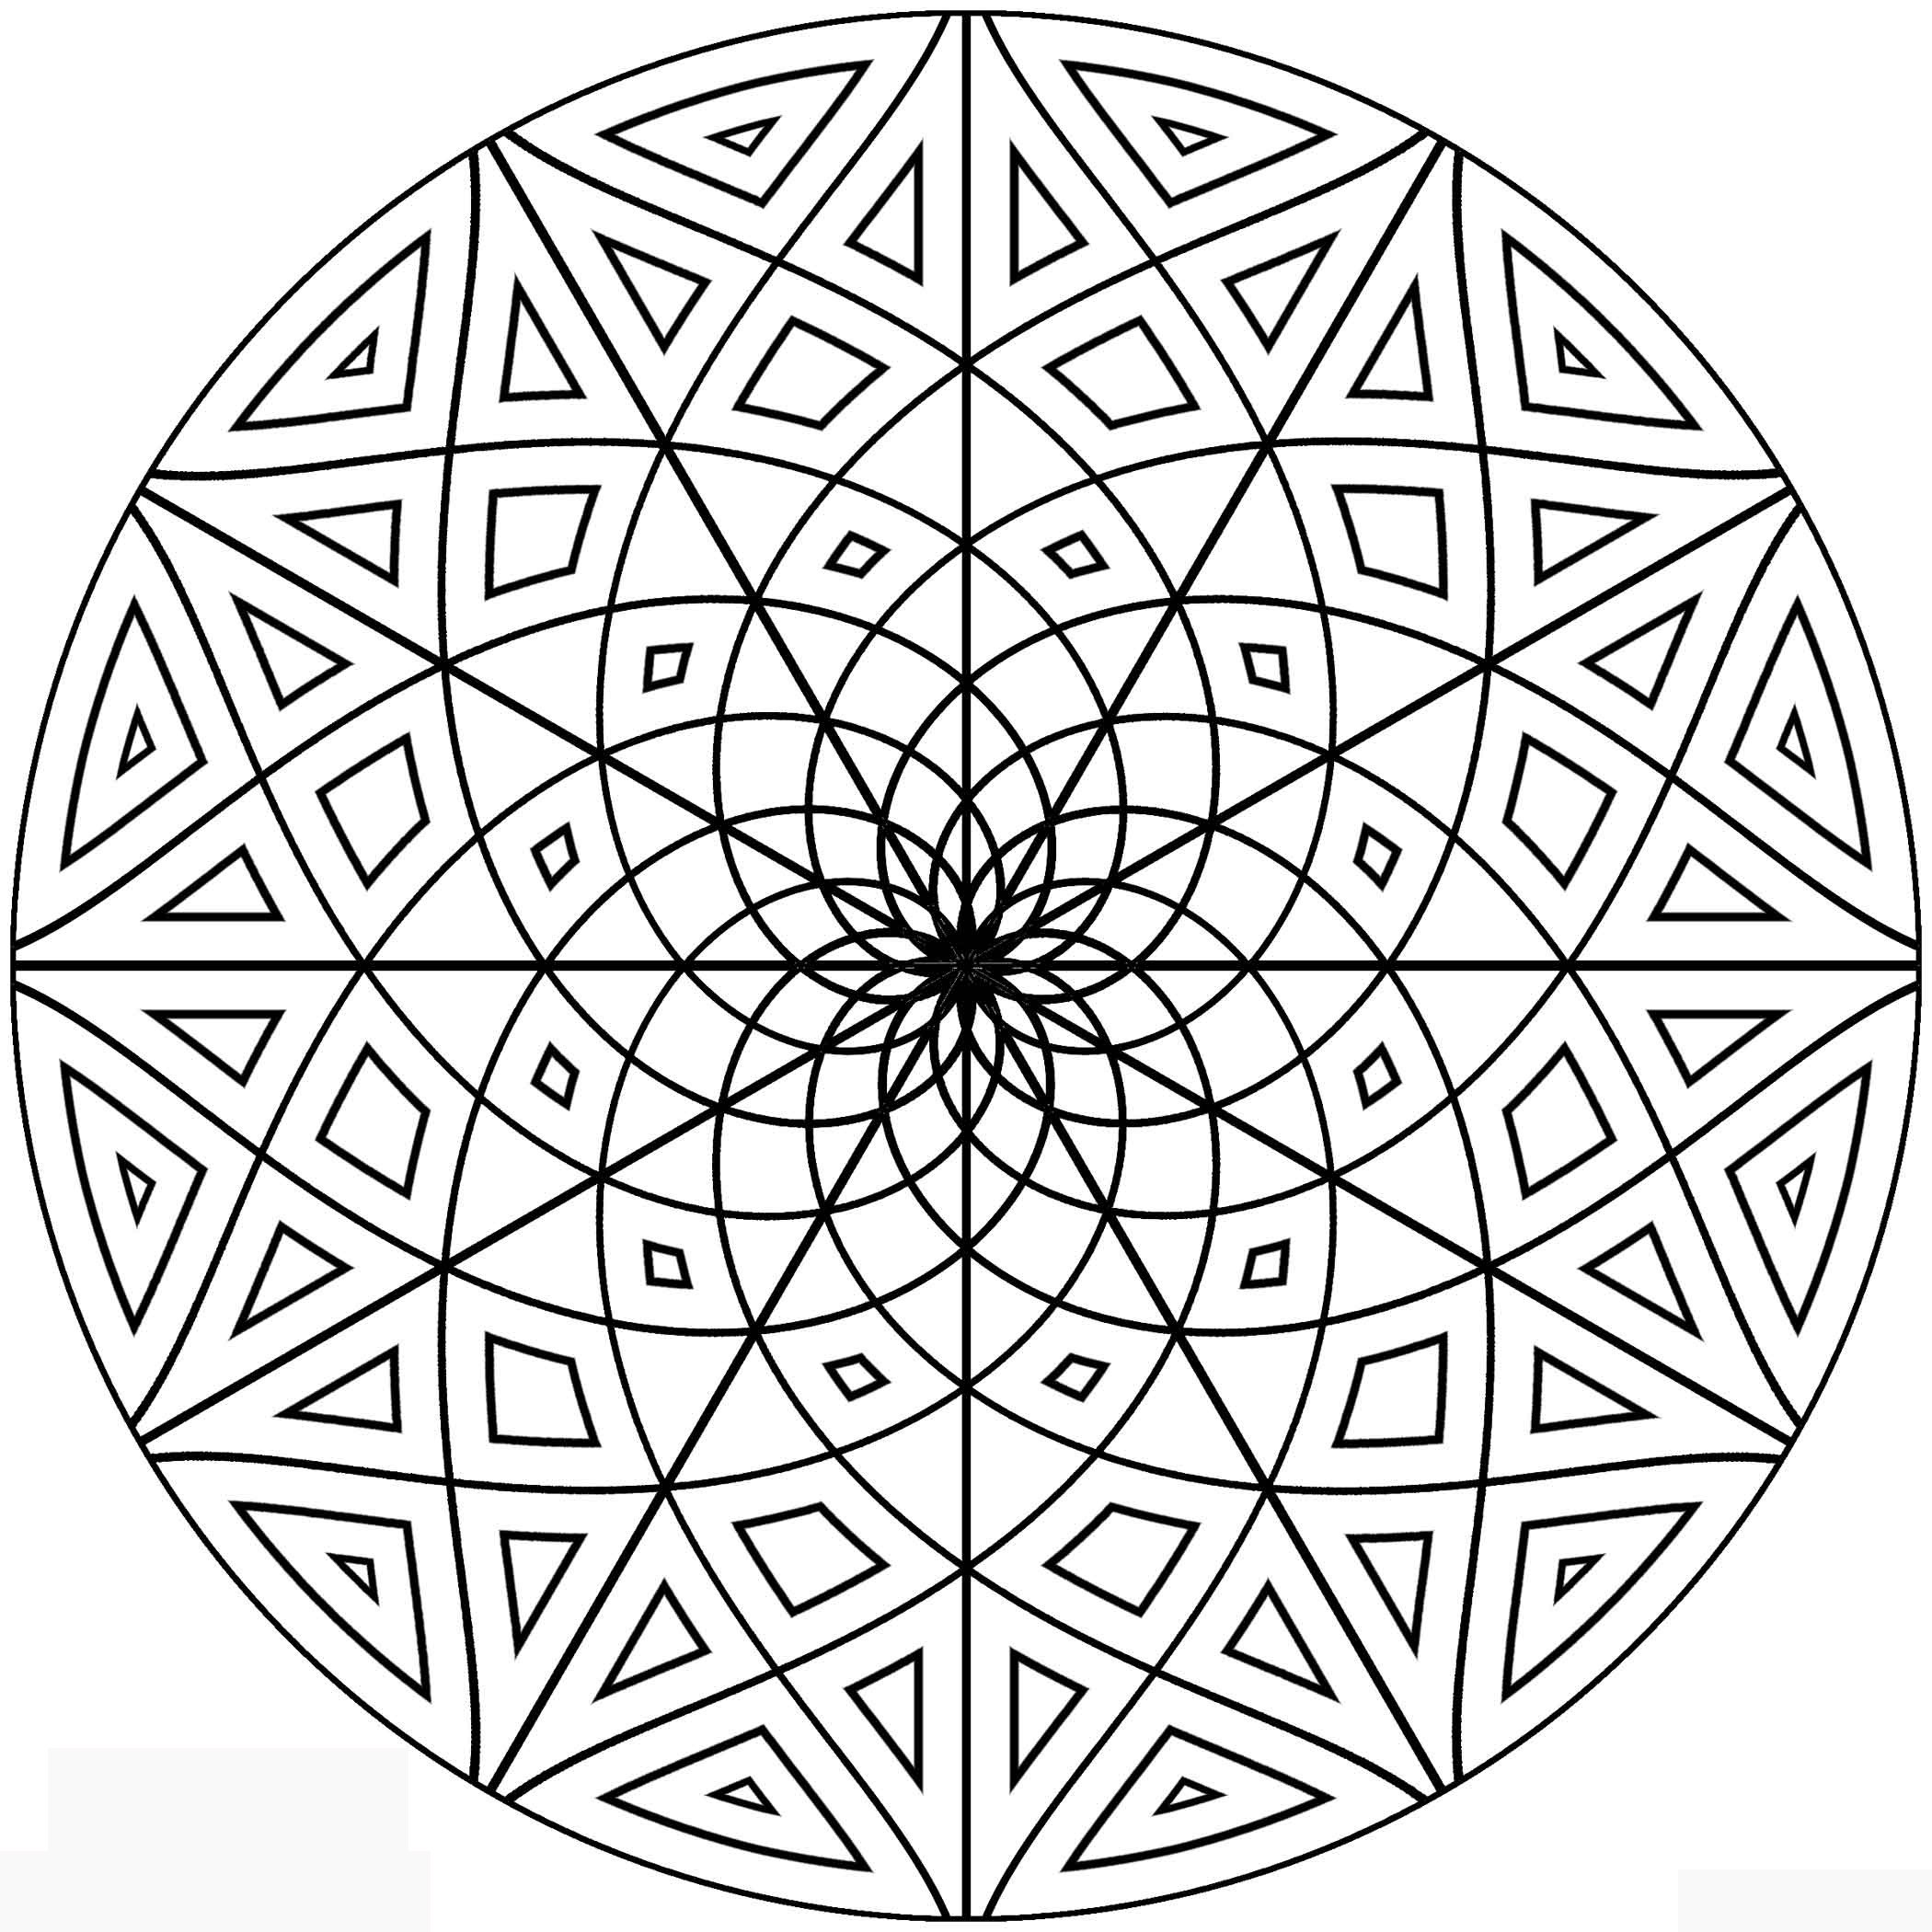 2100x2100 Math Shapes Coloring Pages Free Draw To Color